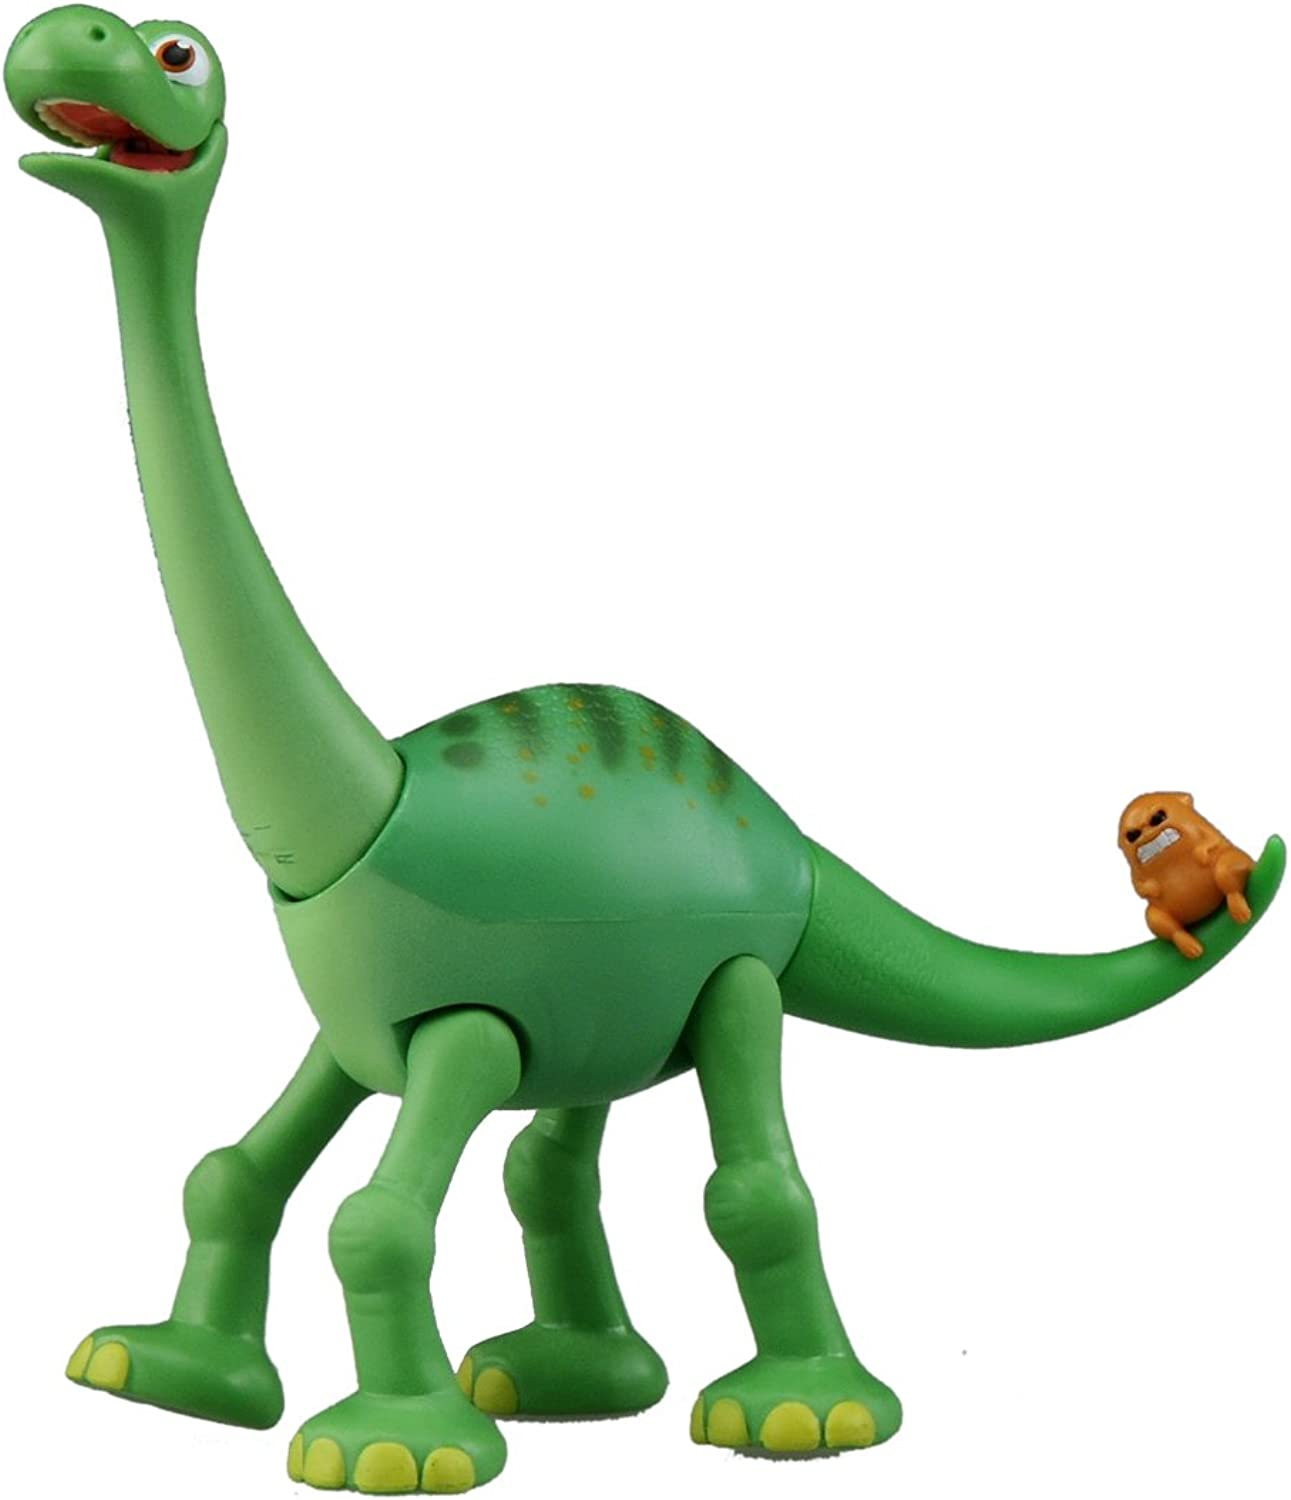 Disney Arlo e boy lively dinosaur collection (gree) Arlo